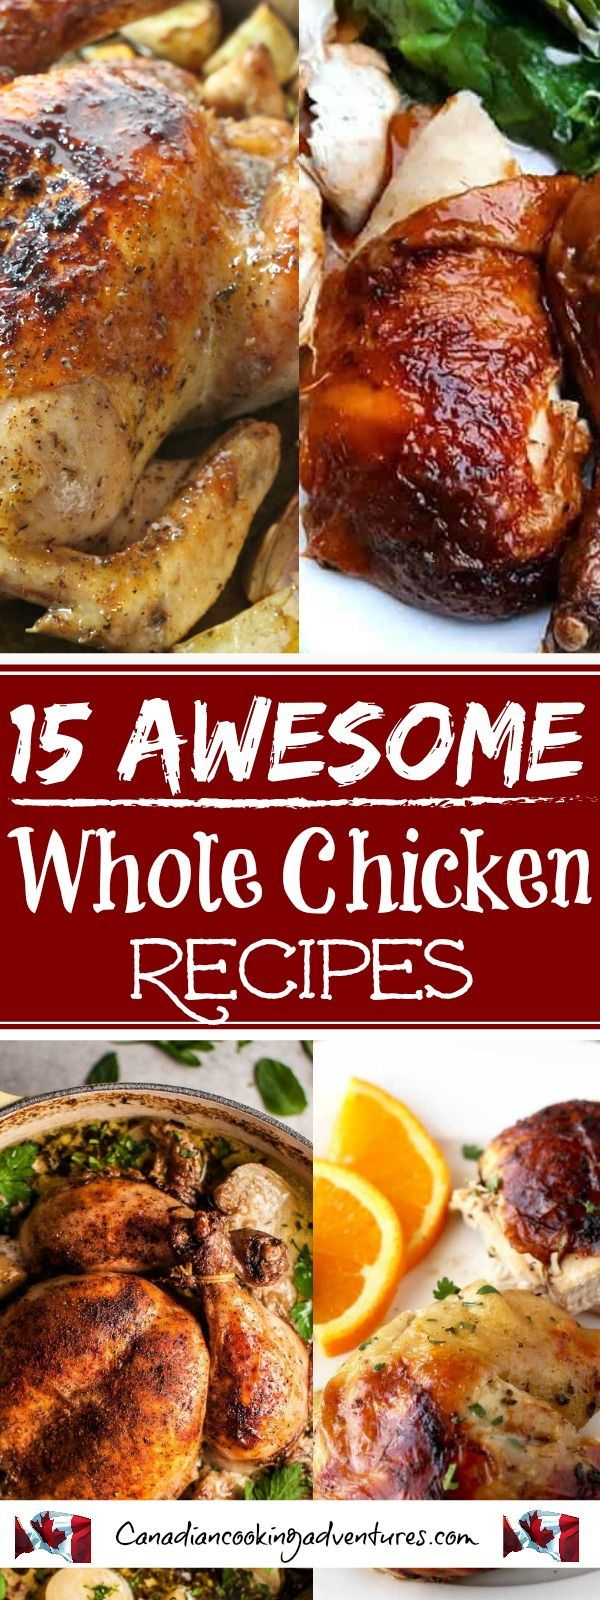 15 Awesome Whole Chicken Recipes